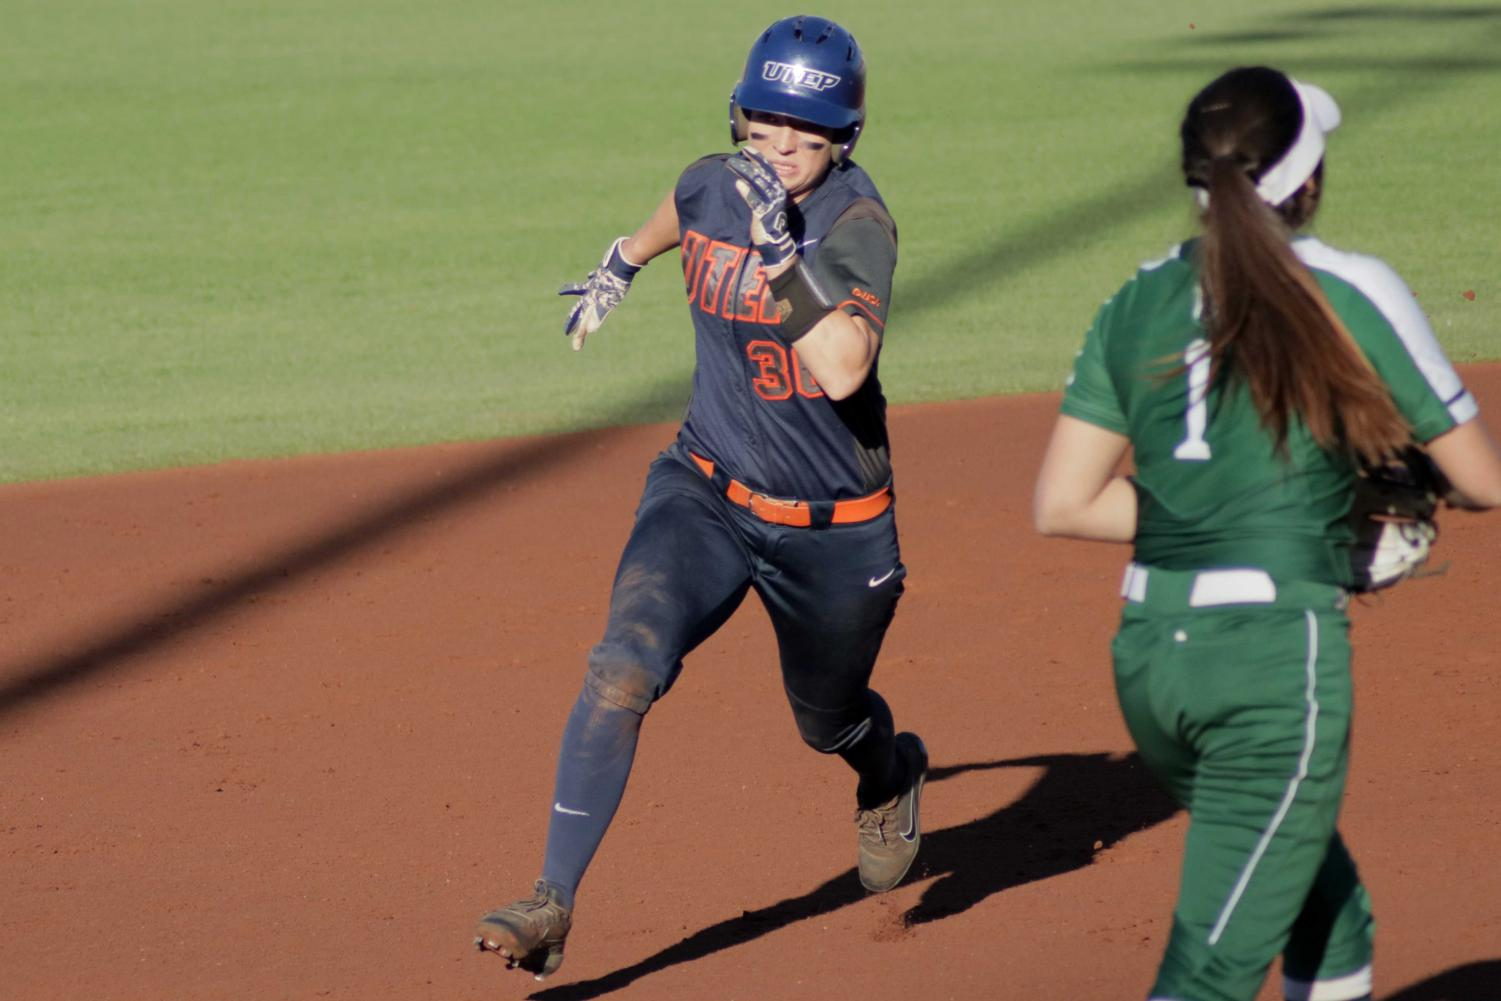 The UTEP softball team has won five of their last six contests.